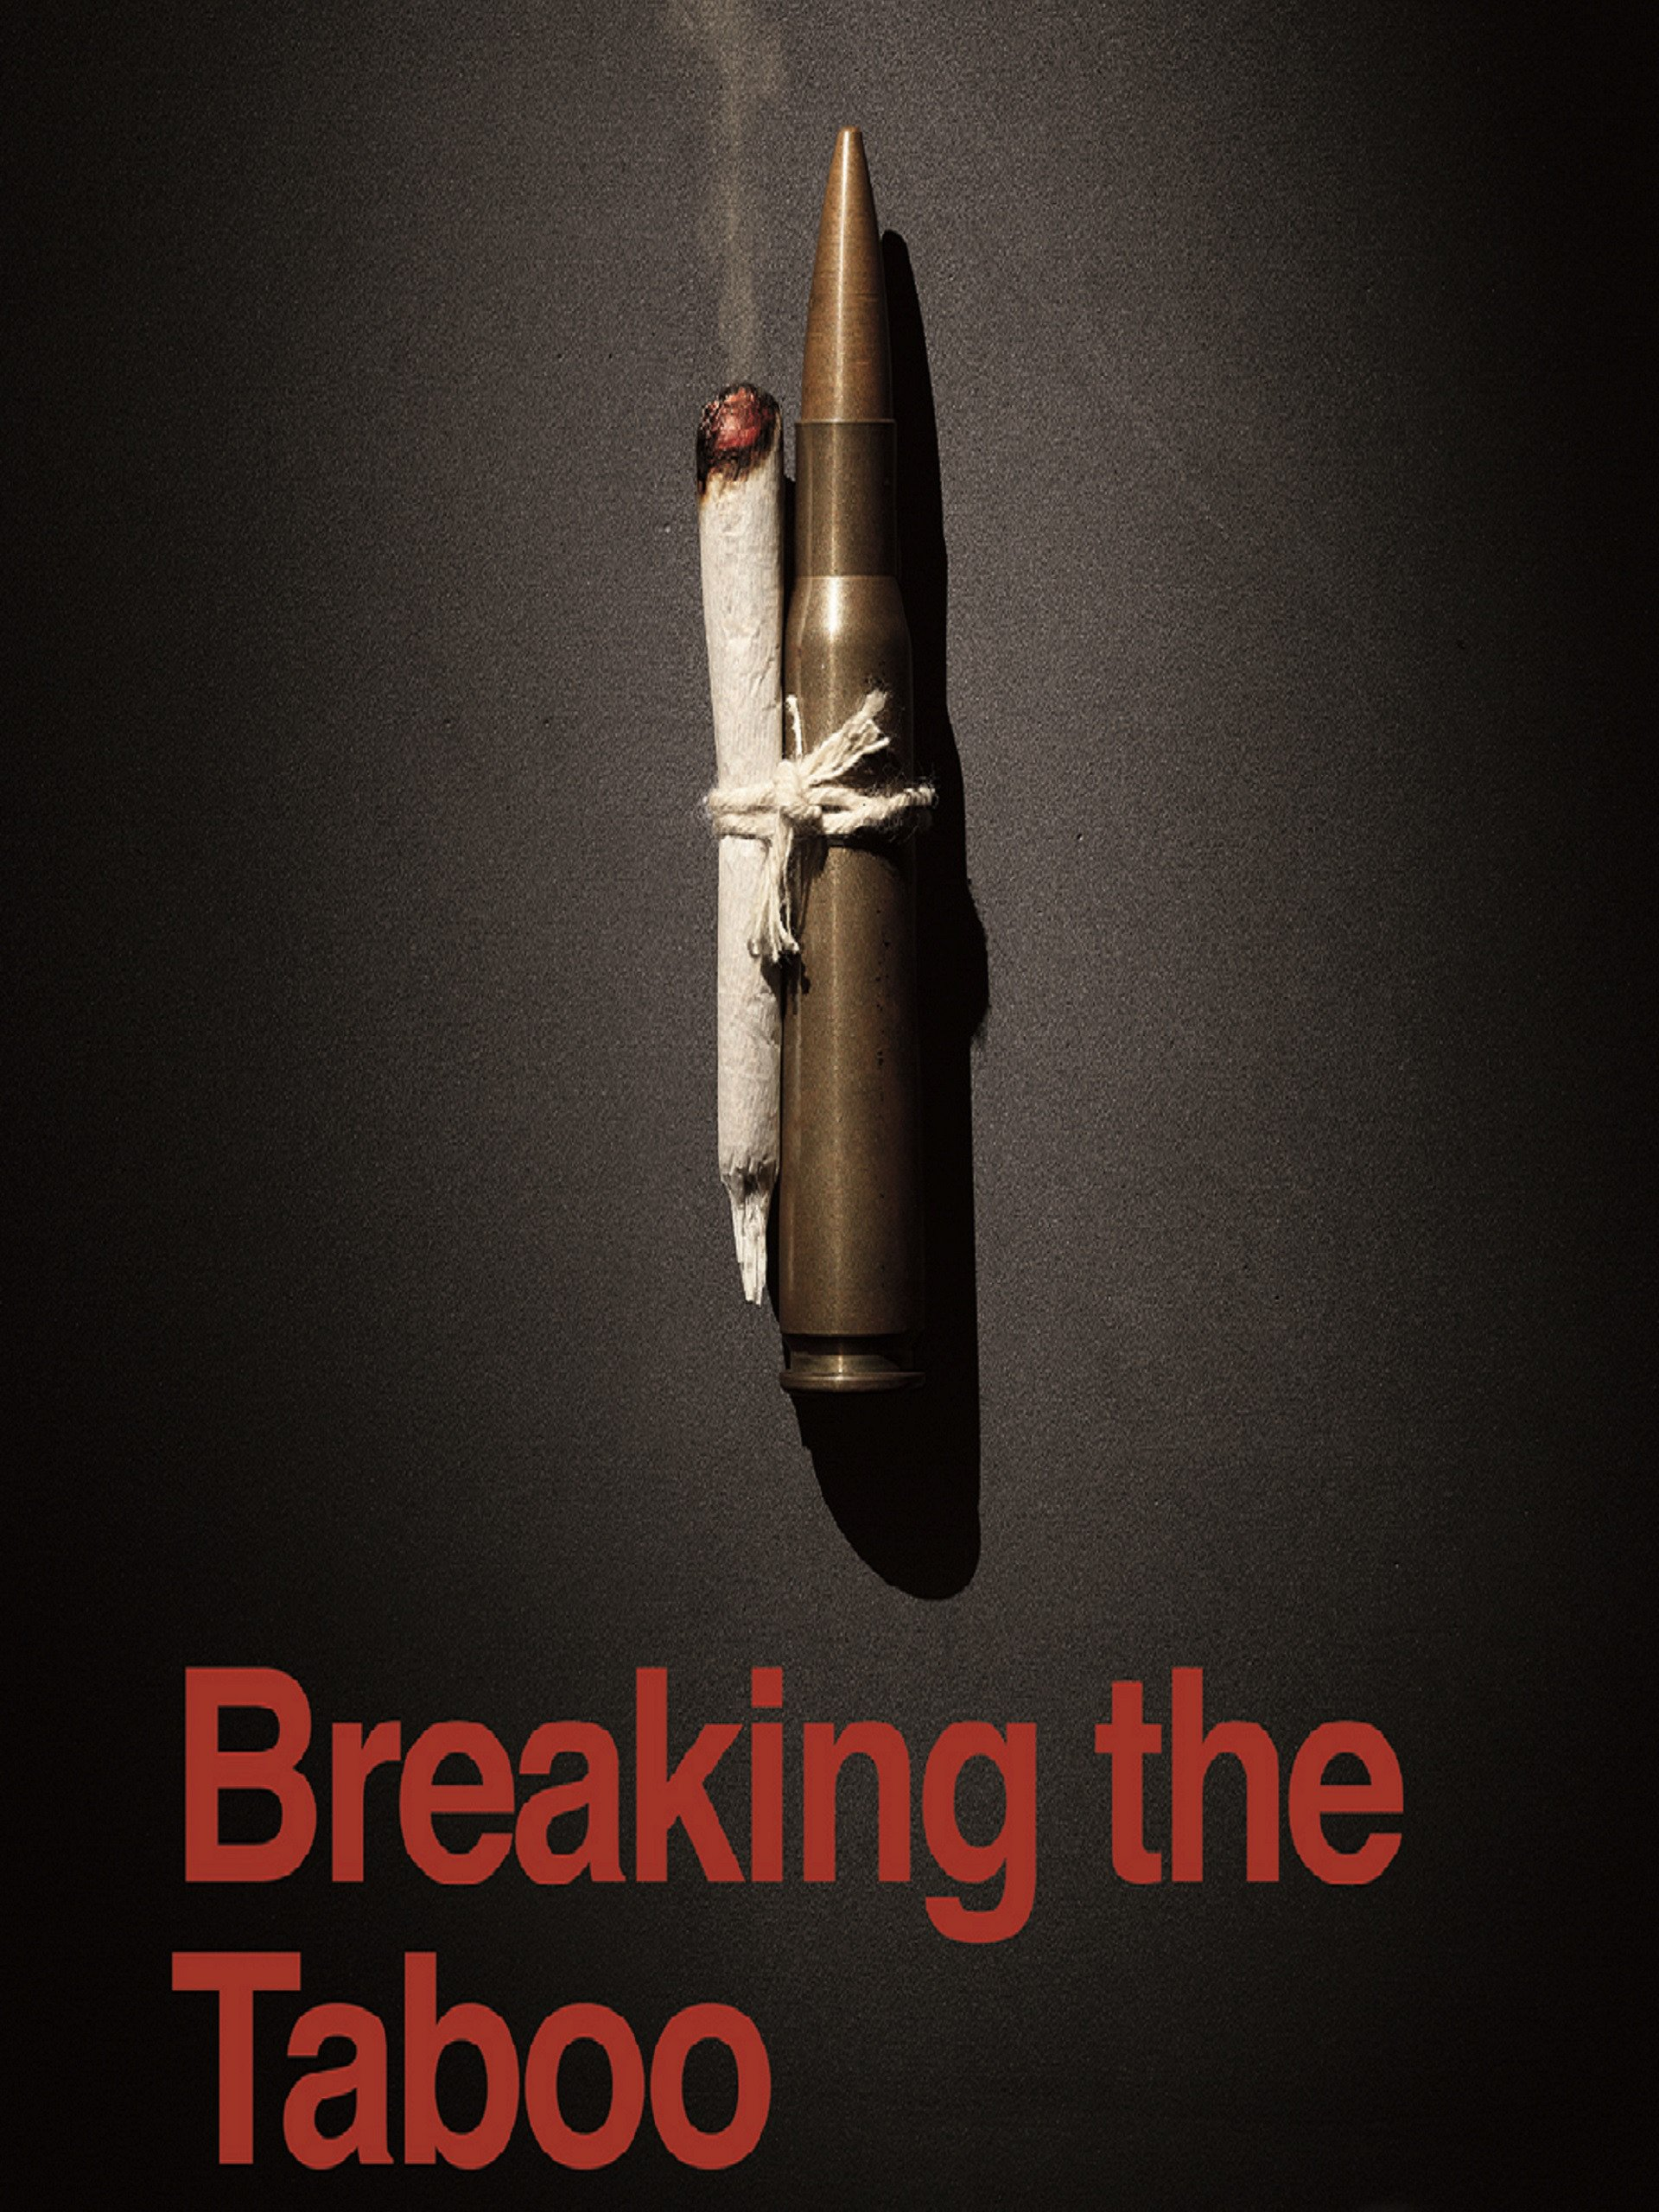 movie poster of Breaking the Taboo